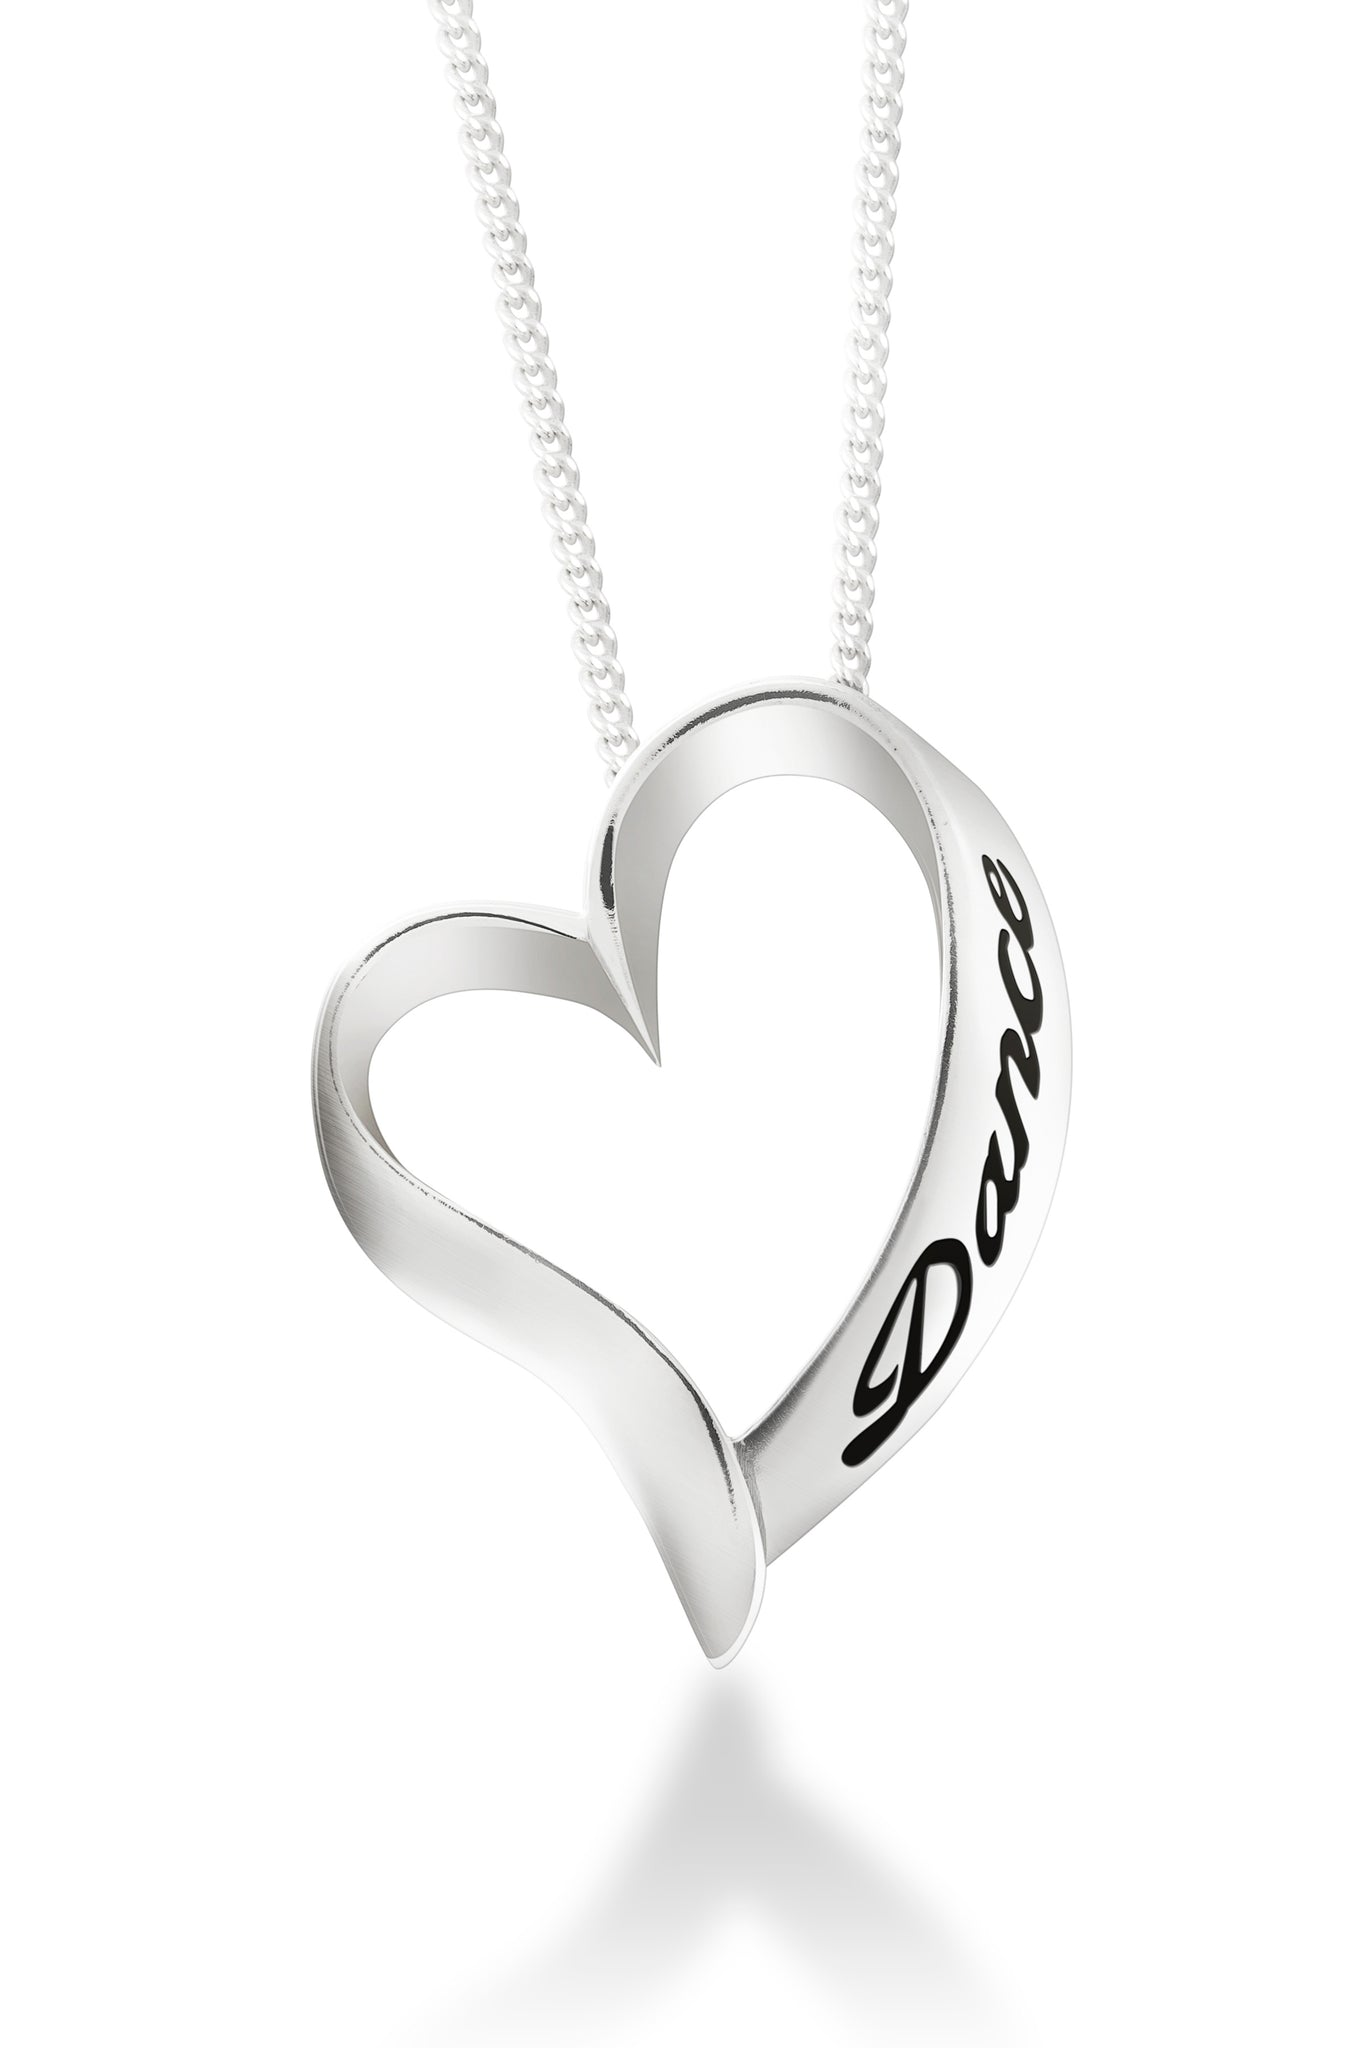 Dancer Necklace Dance Lover Gift on Stainless Steel Silver Chain Born to Dance Stainless Steel Pendant Dance Necklace